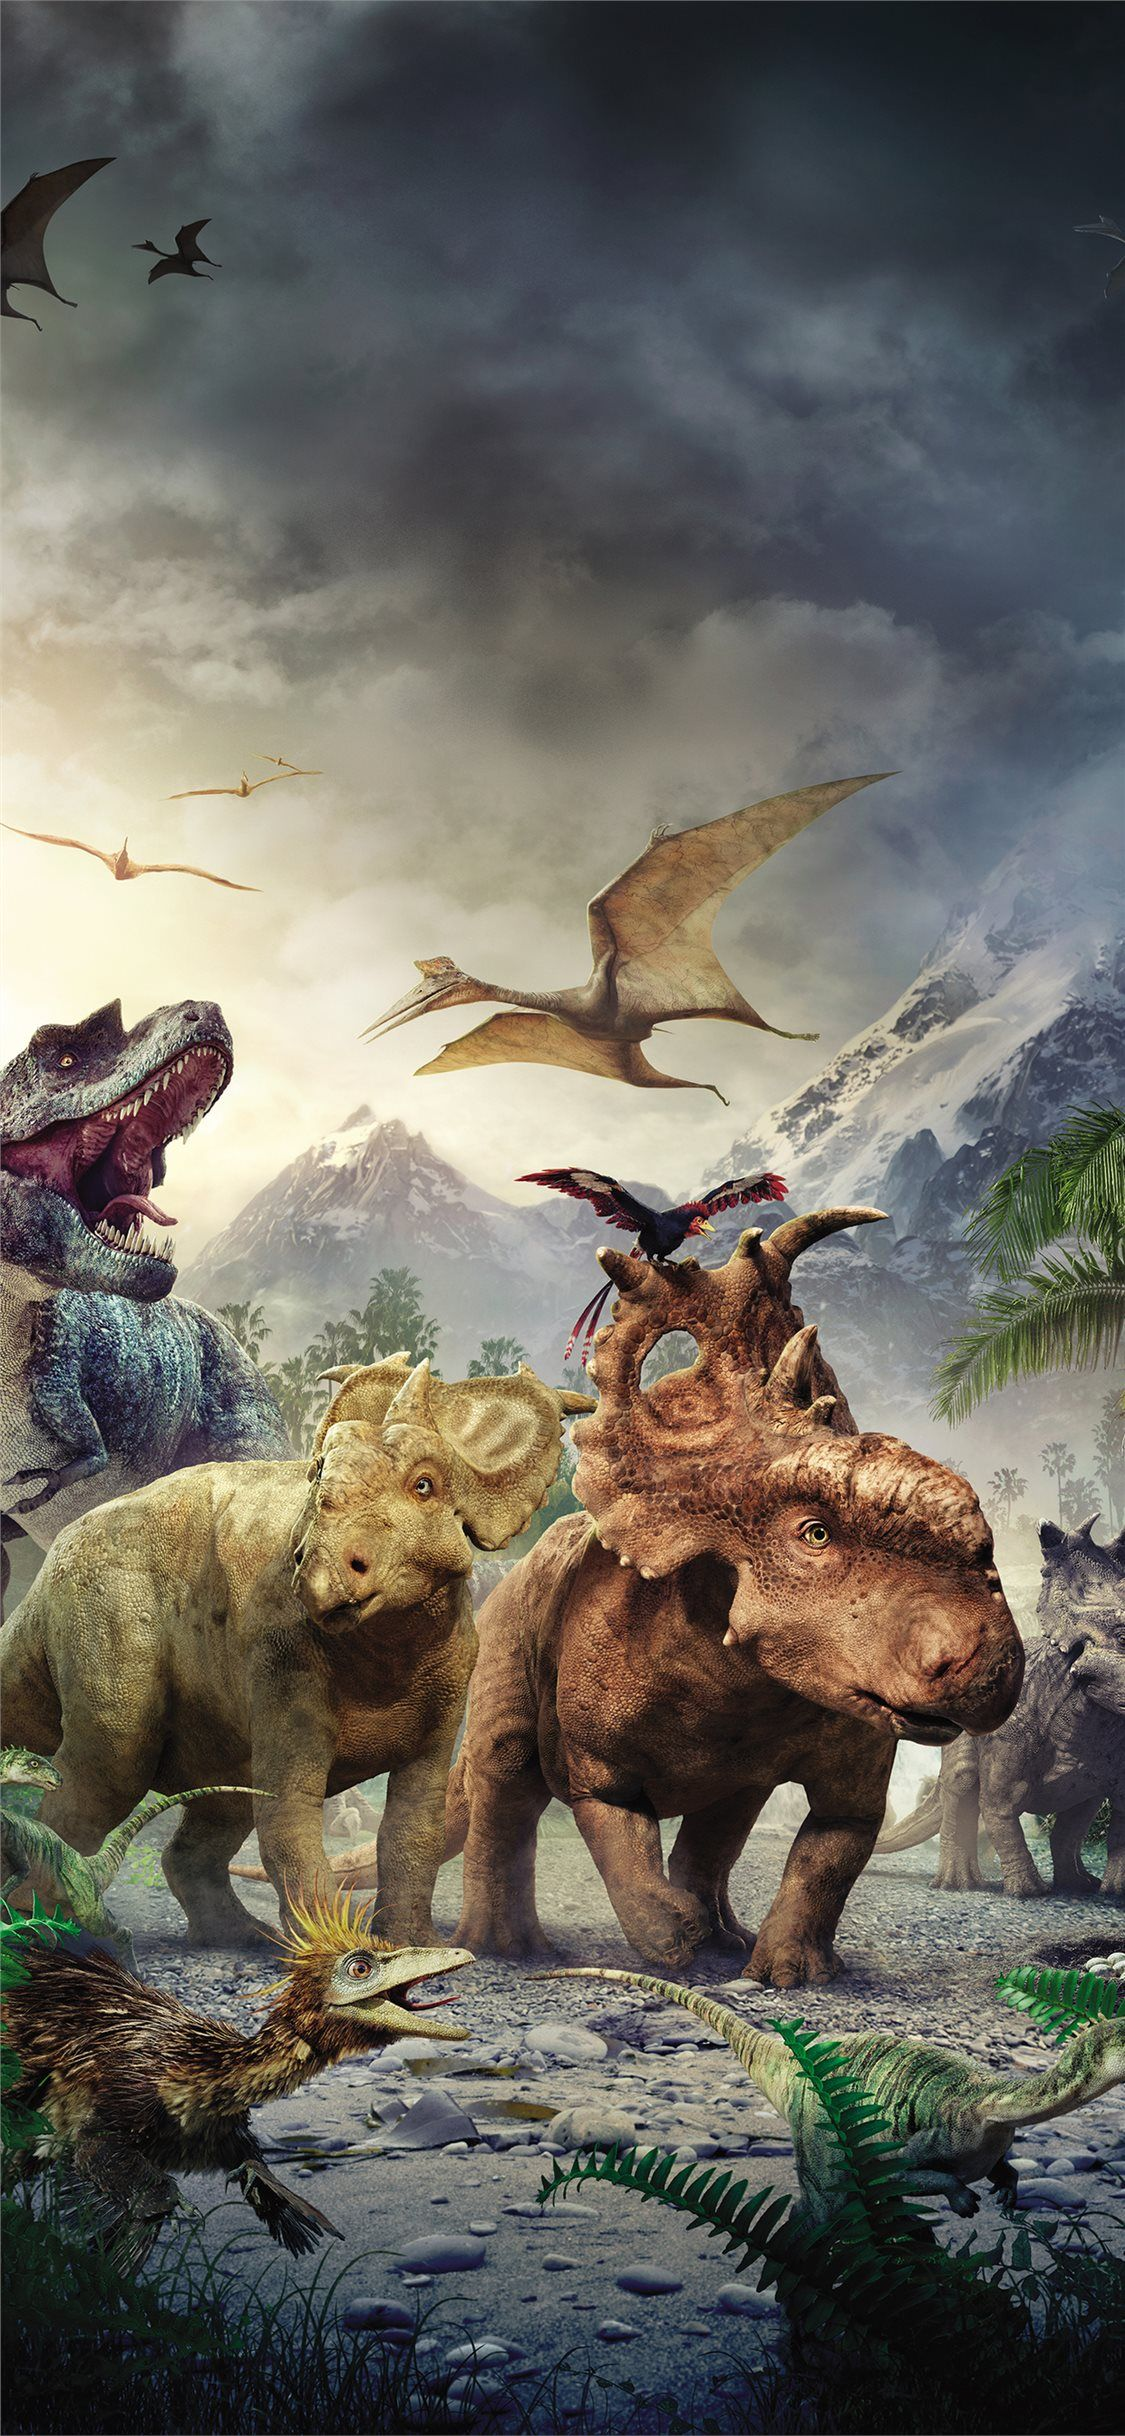 walking with the dinosaurs iPhone 11 Wallpapers in 2020